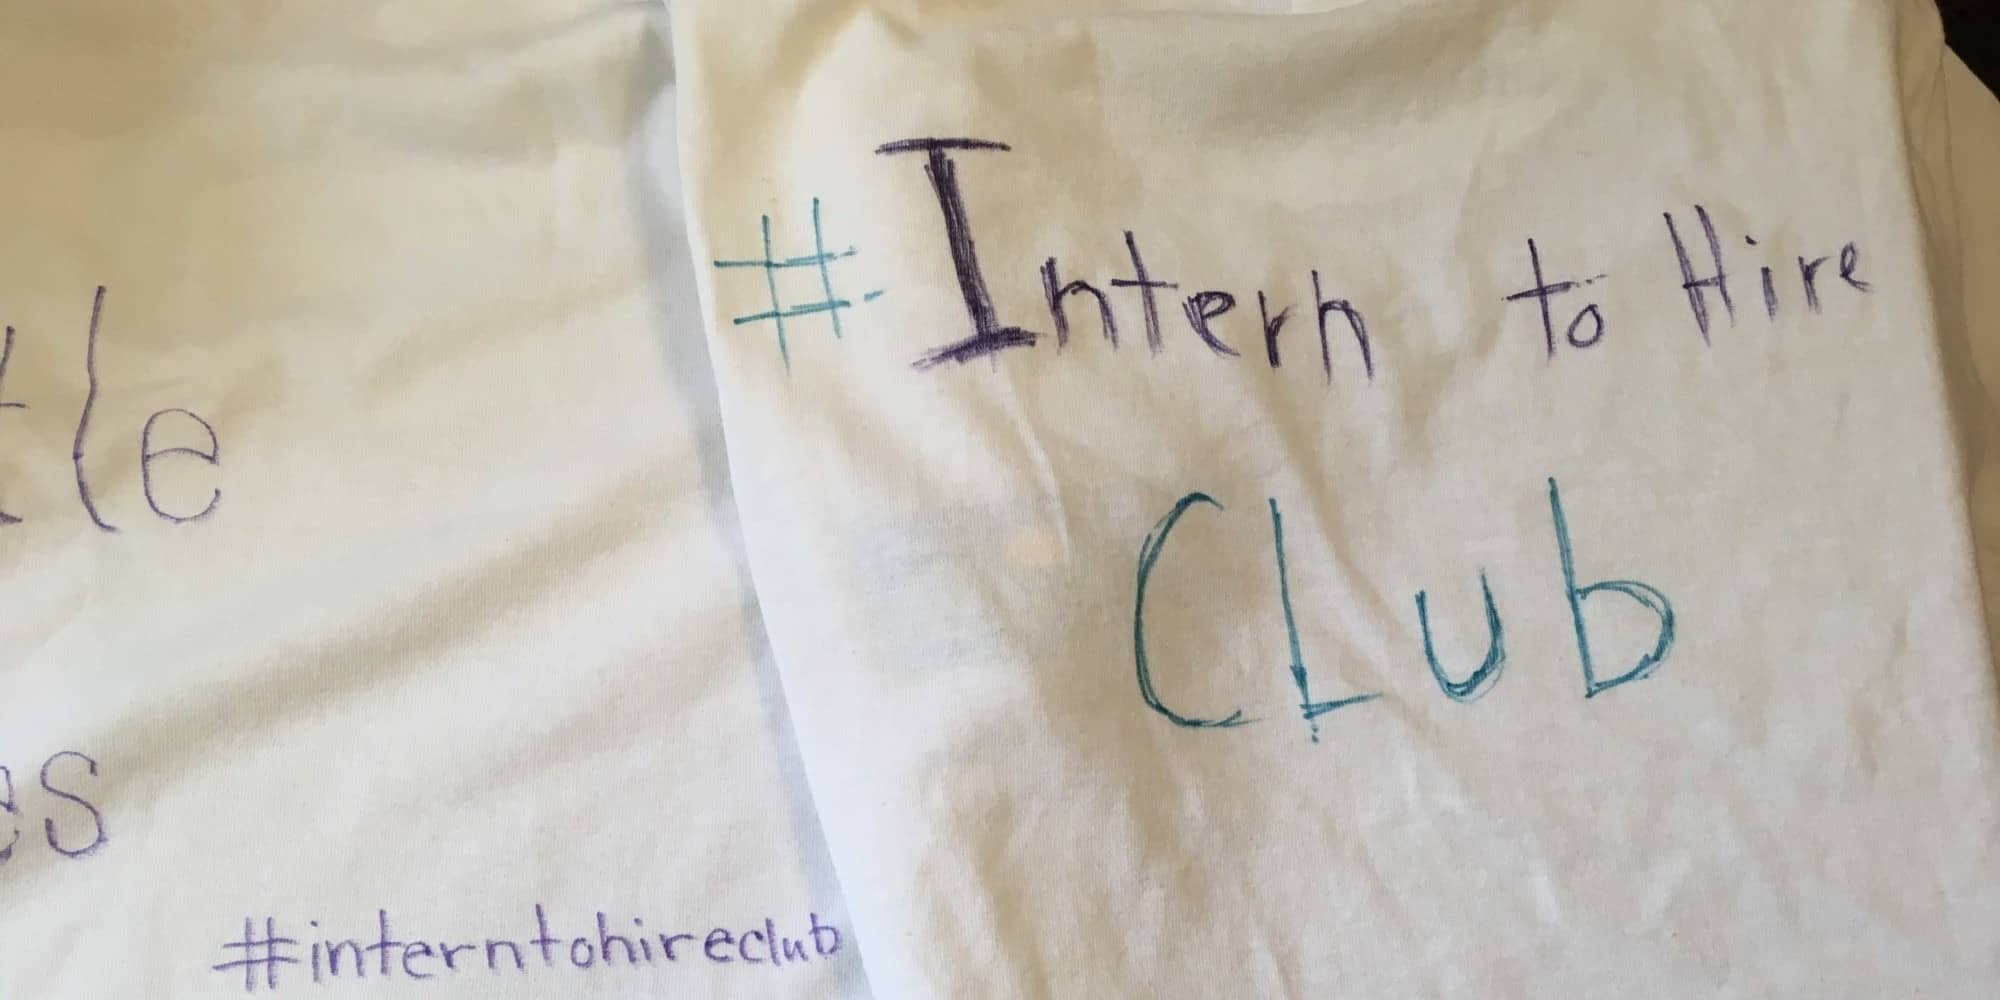 """Intern to Hire club"" on white t-shirt"